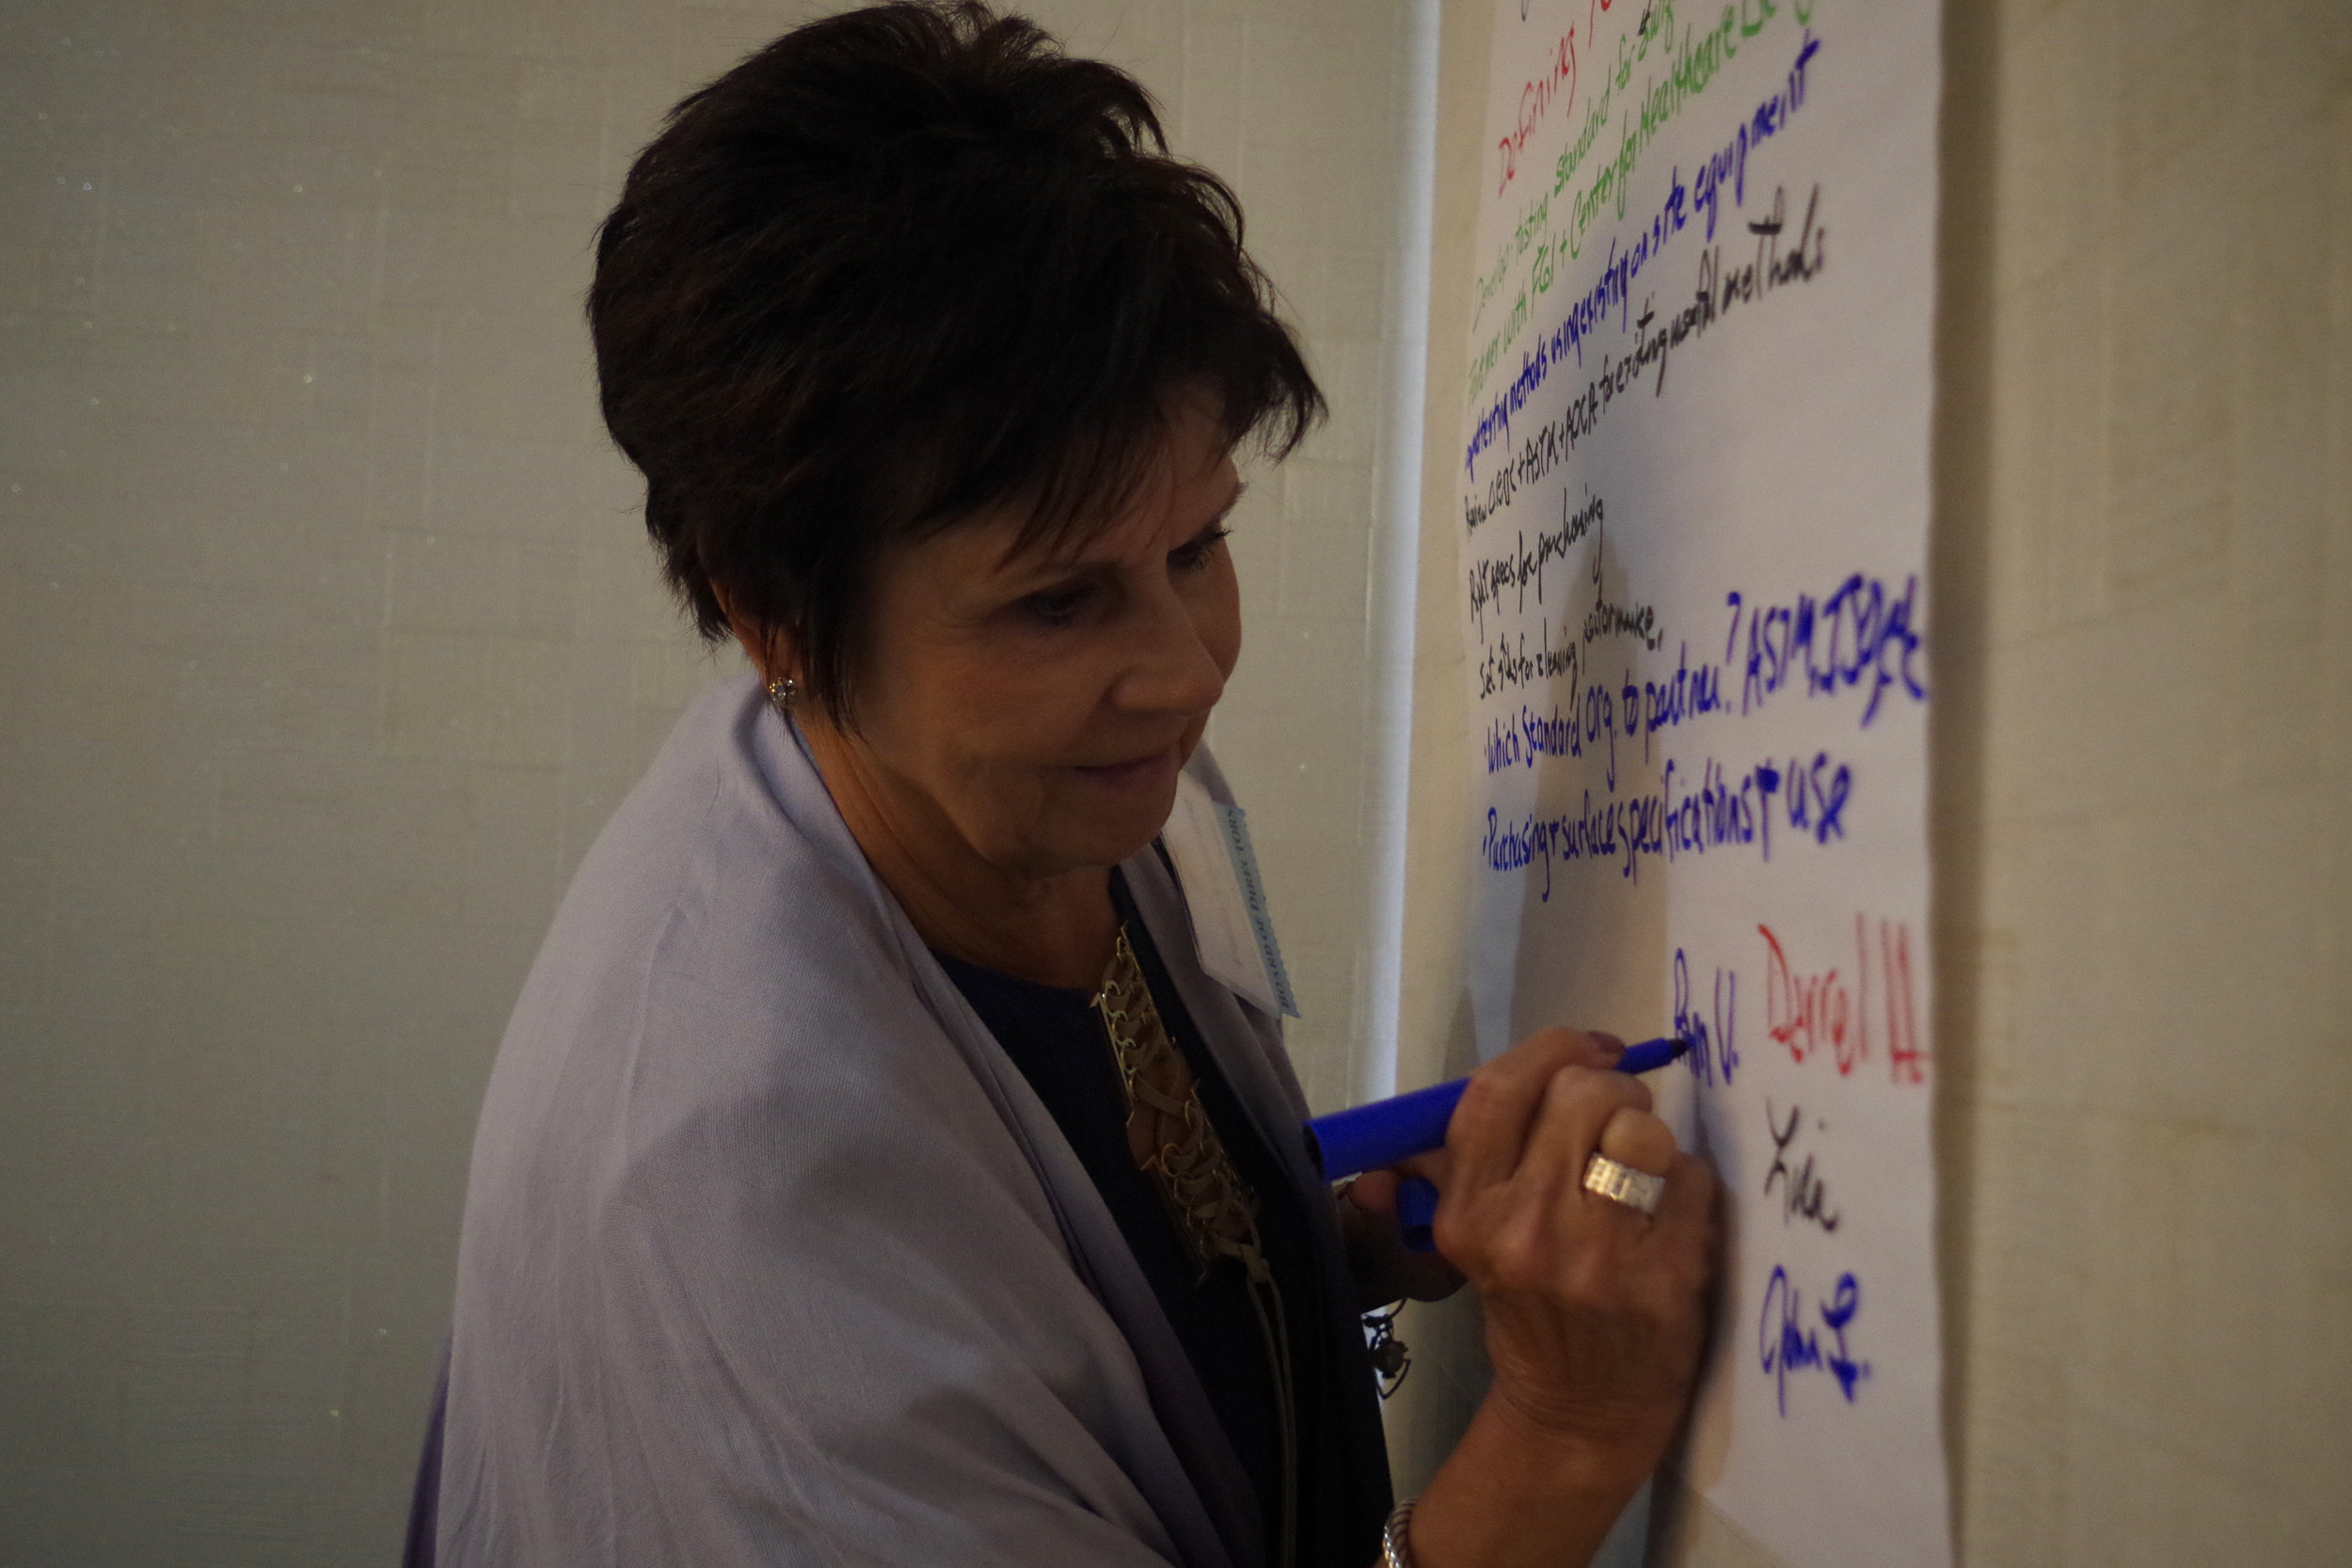 Pam Vaccaro signs up for initiative Group